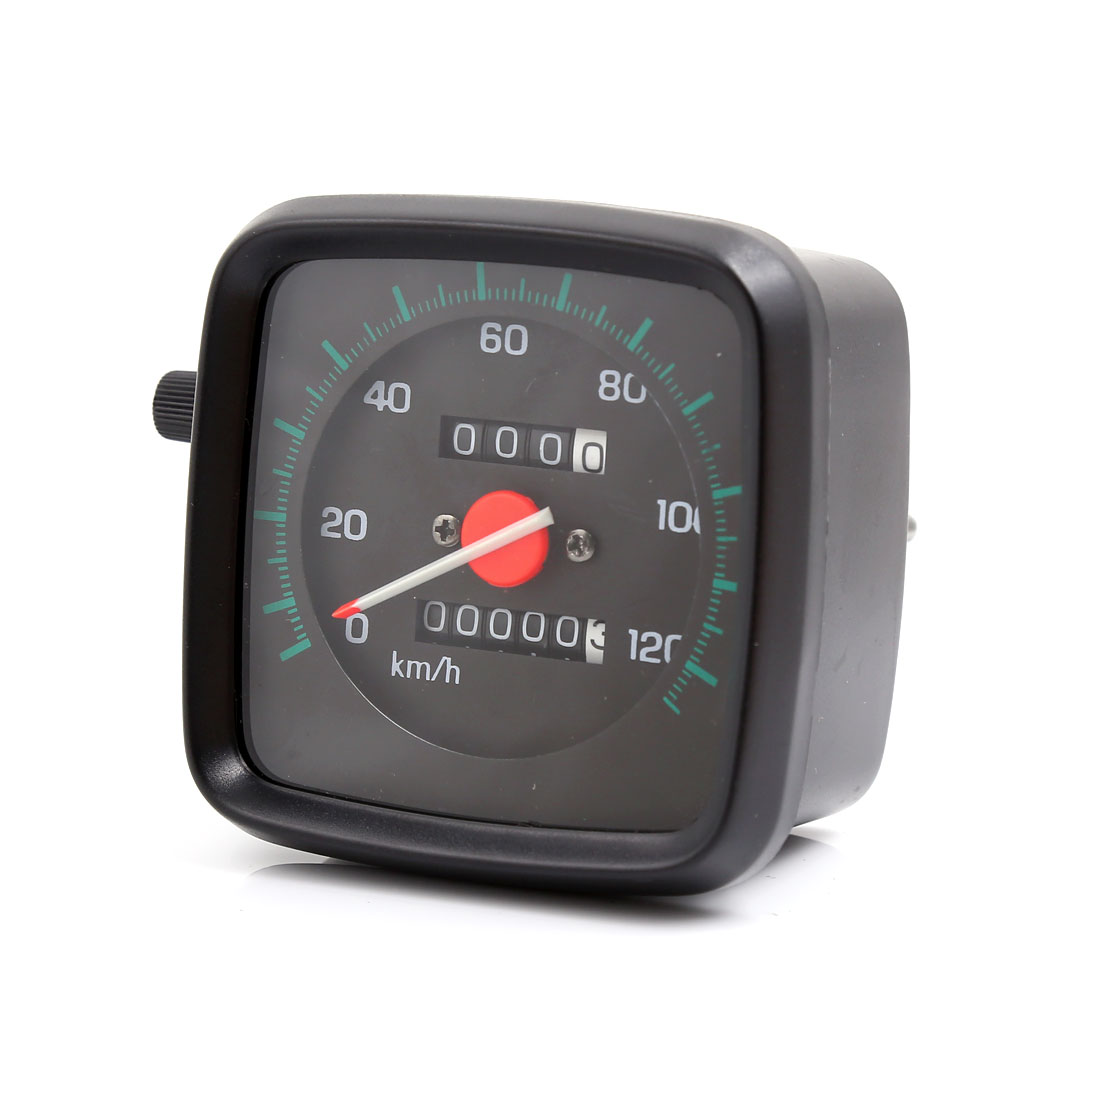 Unique Bargains 0-120km/h Square Shape Daul Odometer Speedometer Gauge for GS Motorcycle